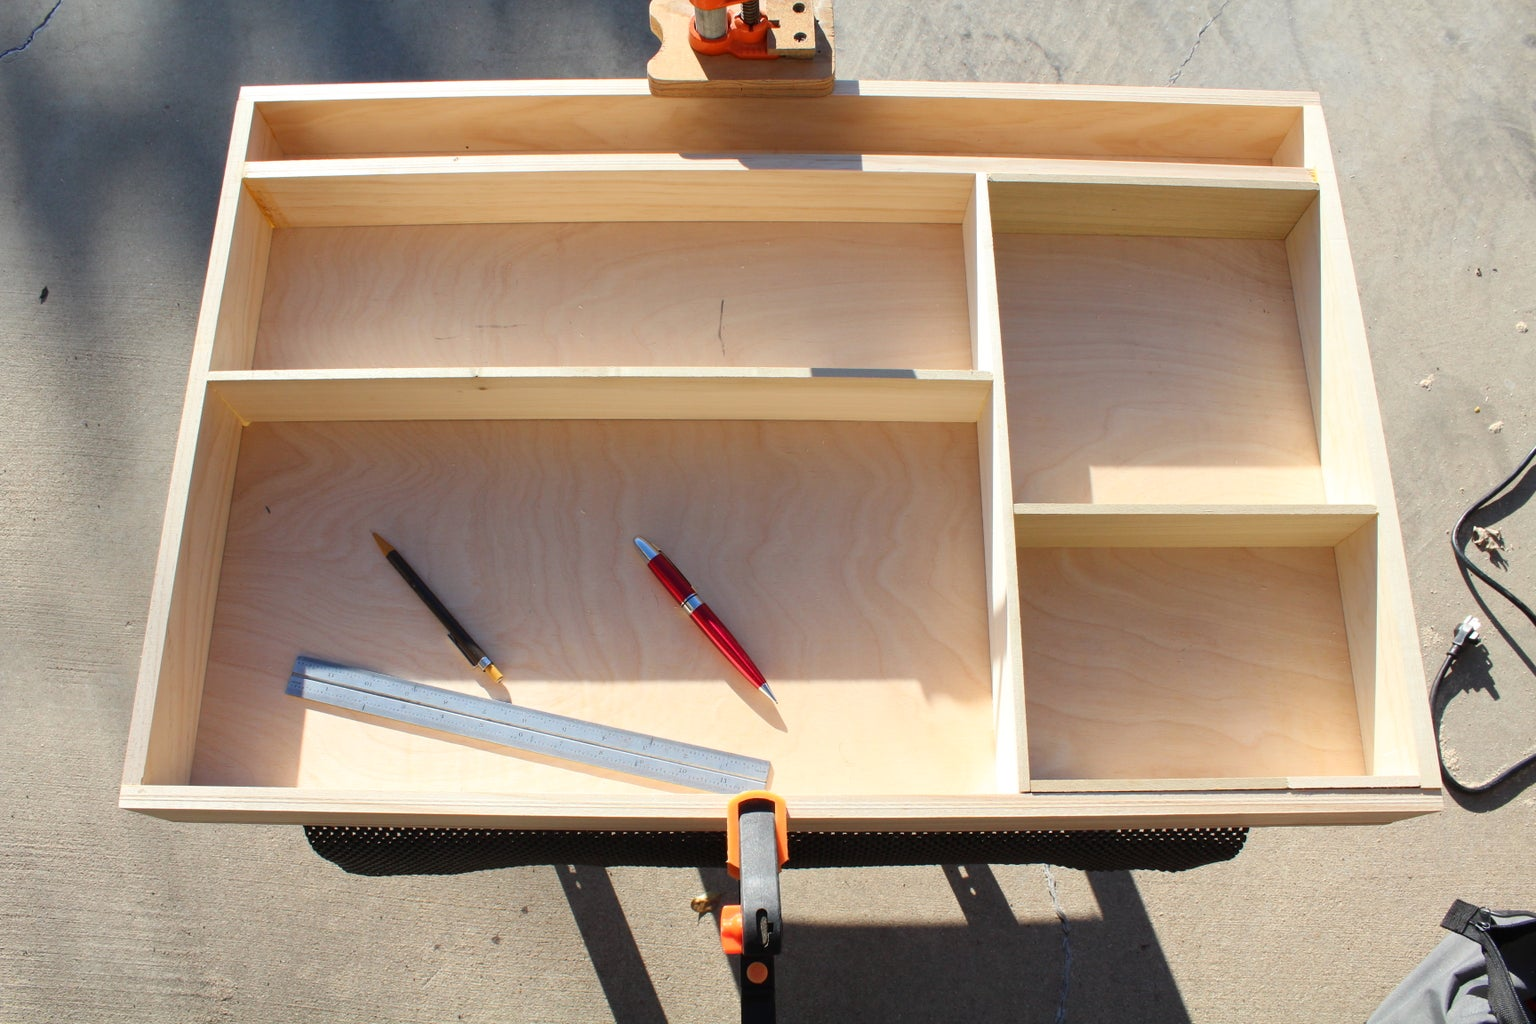 Building the Compartment